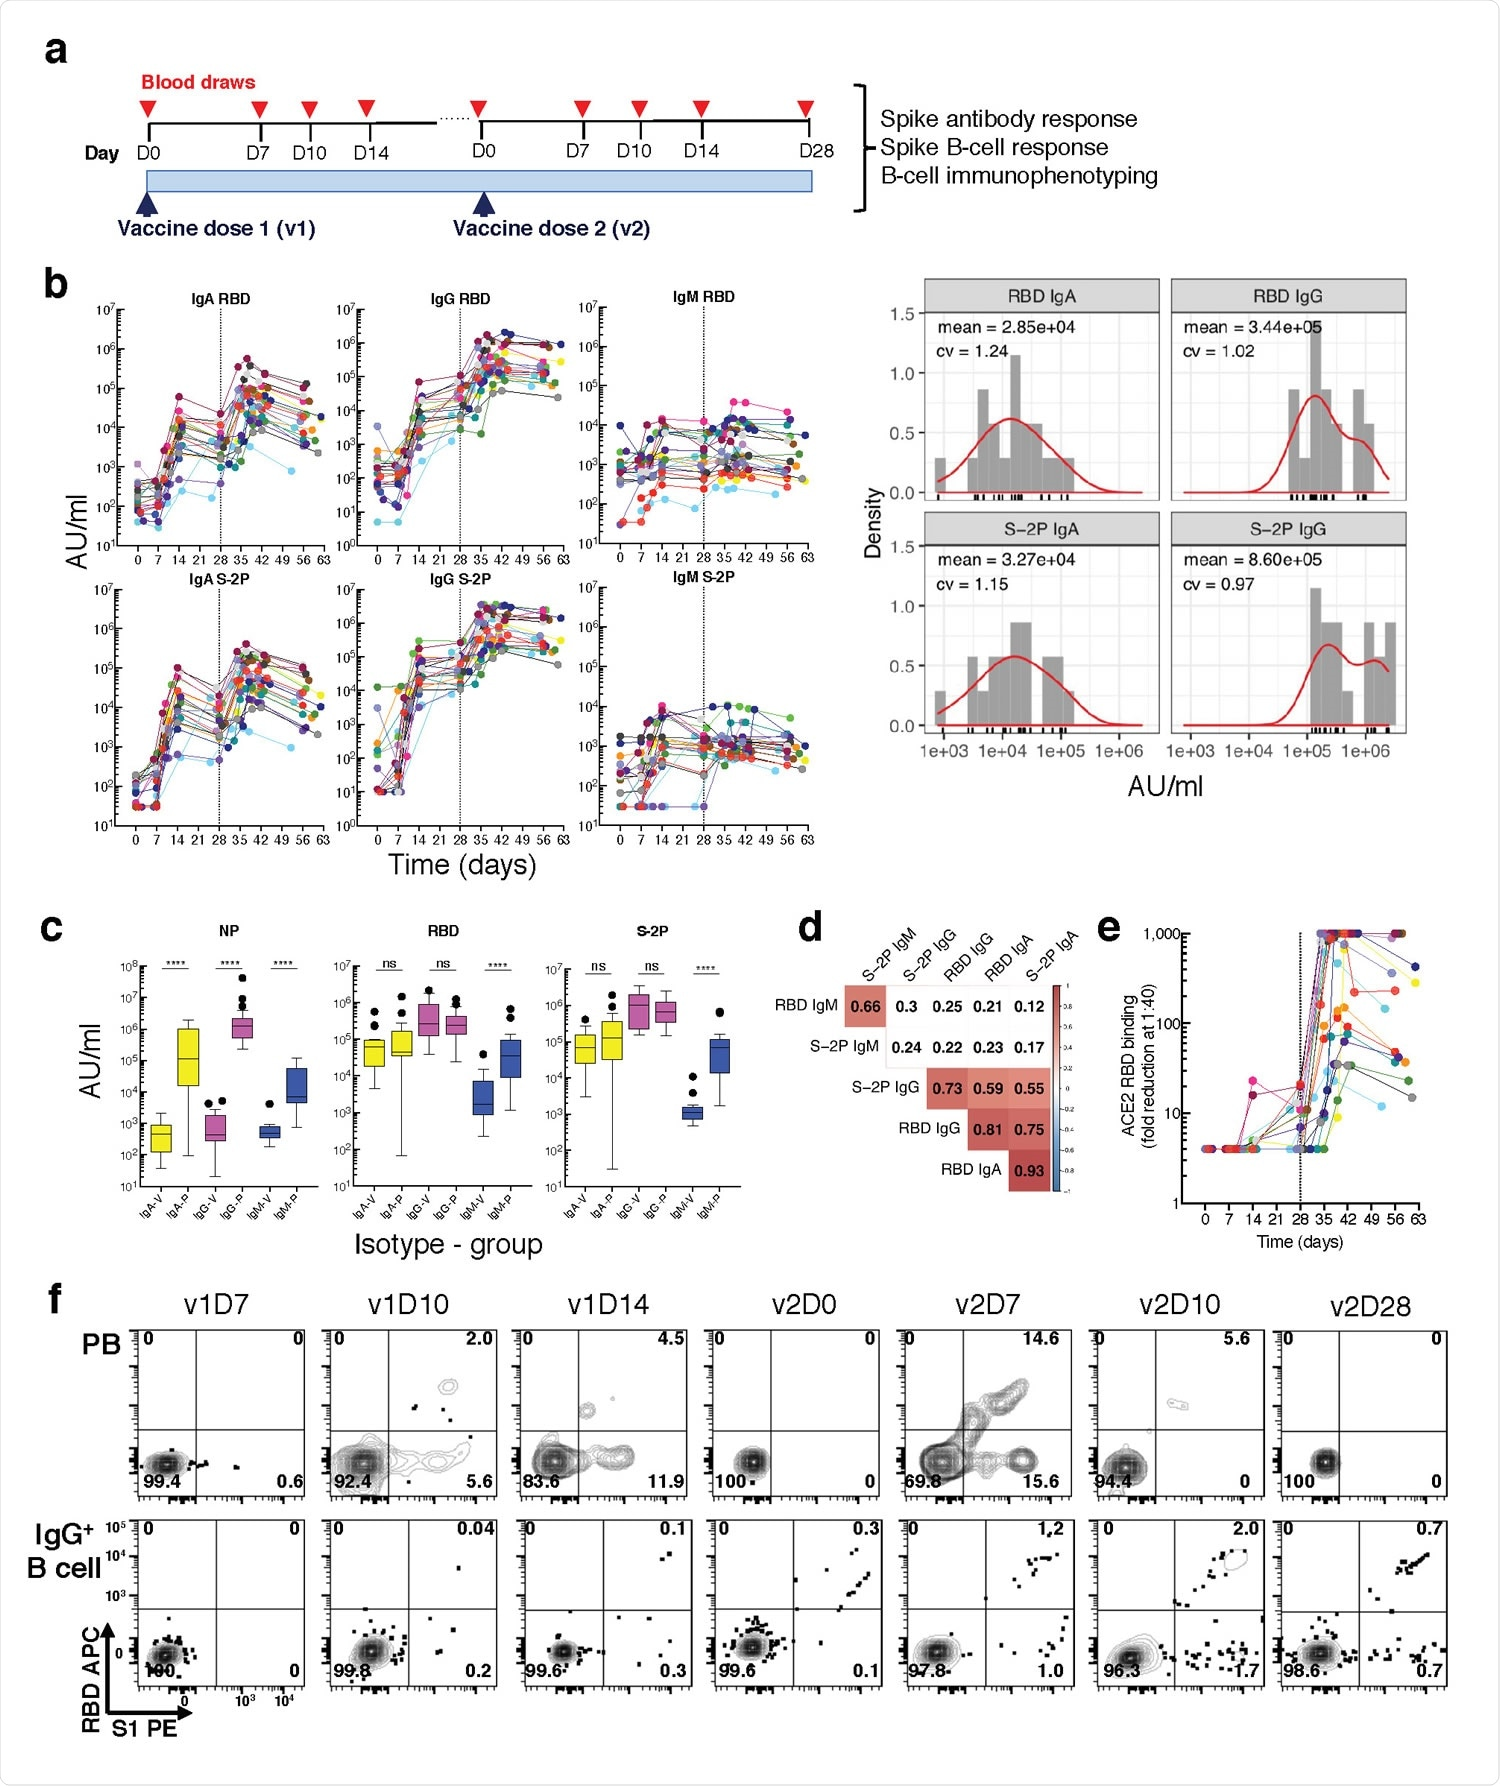 Longitudinal blood sampling and analysis shows robust antibody and early B cell response to mRNA-1273 vaccine. a, Study design with serial blood draws and assays performed at all timepoints on SARS-CoV-2-uninfected vaccinees (n = 21) receiving two doses of the mRNA-1273 vaccine. b, Serum IgG, IgA and IgM binding to S-2P and RBD proteins measured by electrochemiluminescence (ECLIA) longitudinally (left panels), and corresponding histogram and distribution (based on kernel density estimates) at the last timepoint (v2D28) (right panels). c, Peak serum IgG, IgA and IgM binding to S-2P, RBD and N proteins measured by ECLIA in vaccinees (V; n = 21) and COVID503 19 patients (P; n = 21), shown as boxplots. d, Triangular heatmap of correlation between serum antibodies at last measured timepoint (v2D28) in (b). Numbers represent r values. Statistically insignificant correlations (p > 0.05) shown in white. e, Longitudinal inhibition of RBD binding to ACE2 by serum (1:40 dilution) of vaccinees (n = 21). f, Longitudinal binding of S1 and RBD tetramers to PB and IgG+ 507 B cells by flow cytometry shown for a high responder (VAC-611; Extended Data Table 1). Numbers in each quadrant are percentages. Each vaccinee is color509 coded and second vaccine dose indicated by vertical dotted line (b,e). Mann-Whitney test; ****, p < 0.0001 (c). Spearman's rank correlation (d). AU, arbitrary units; D, day; N, nucleocapsid; ns, not significant; P, patients with severe COVID-19; PB, plasmablasts; RBD, receptor binding domain; S1, spike subunit 1; S-2P, stabilized spike trimer; v, vaccine dose; V, vaccinees.